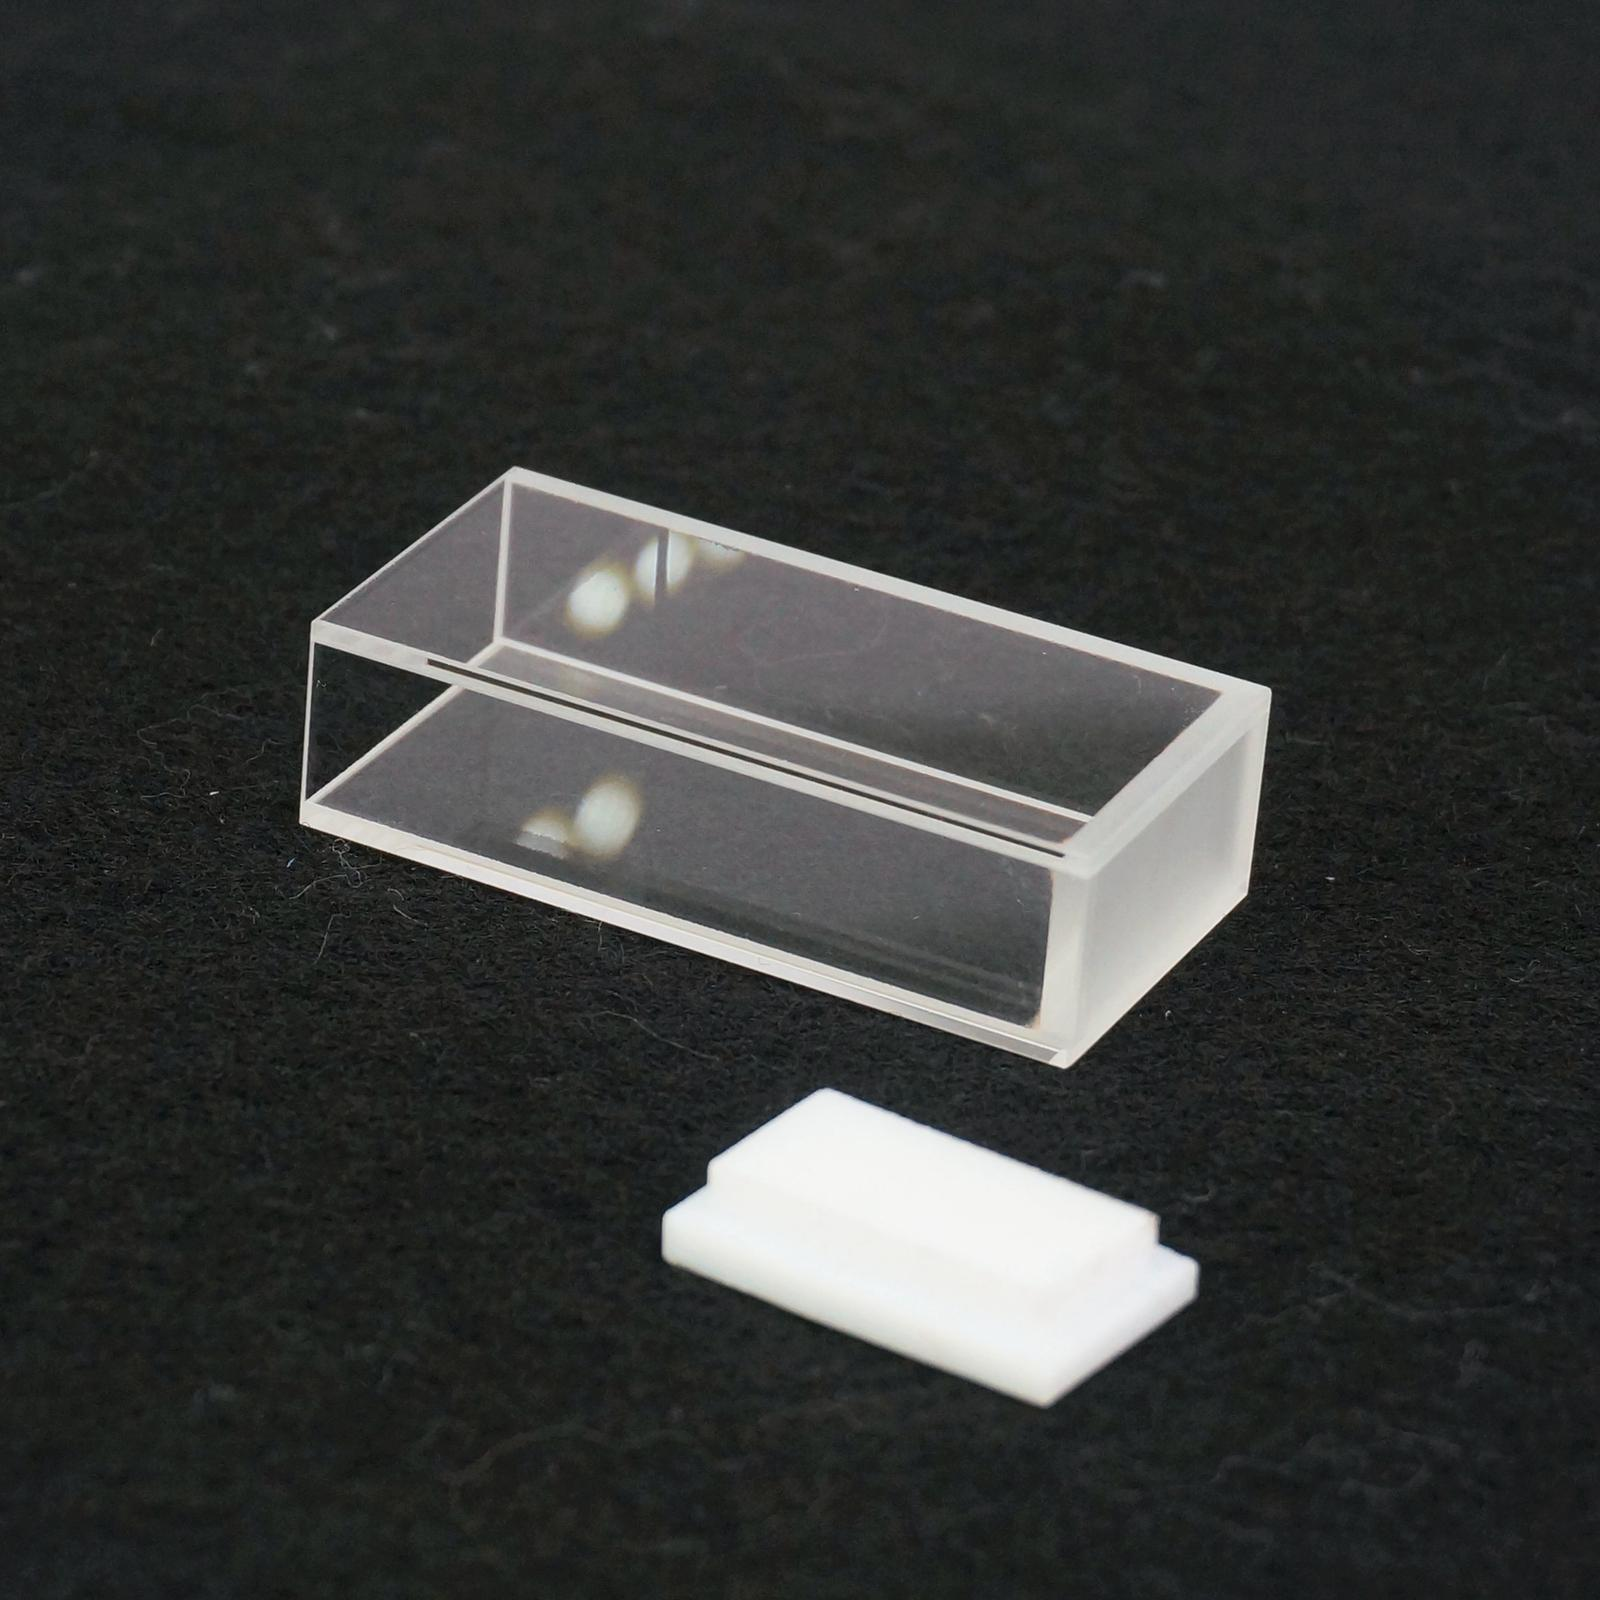 20mm Path Length JGS1 Quartz Cuvette Cell With Telfon Lid For Uv Spectrophotometers